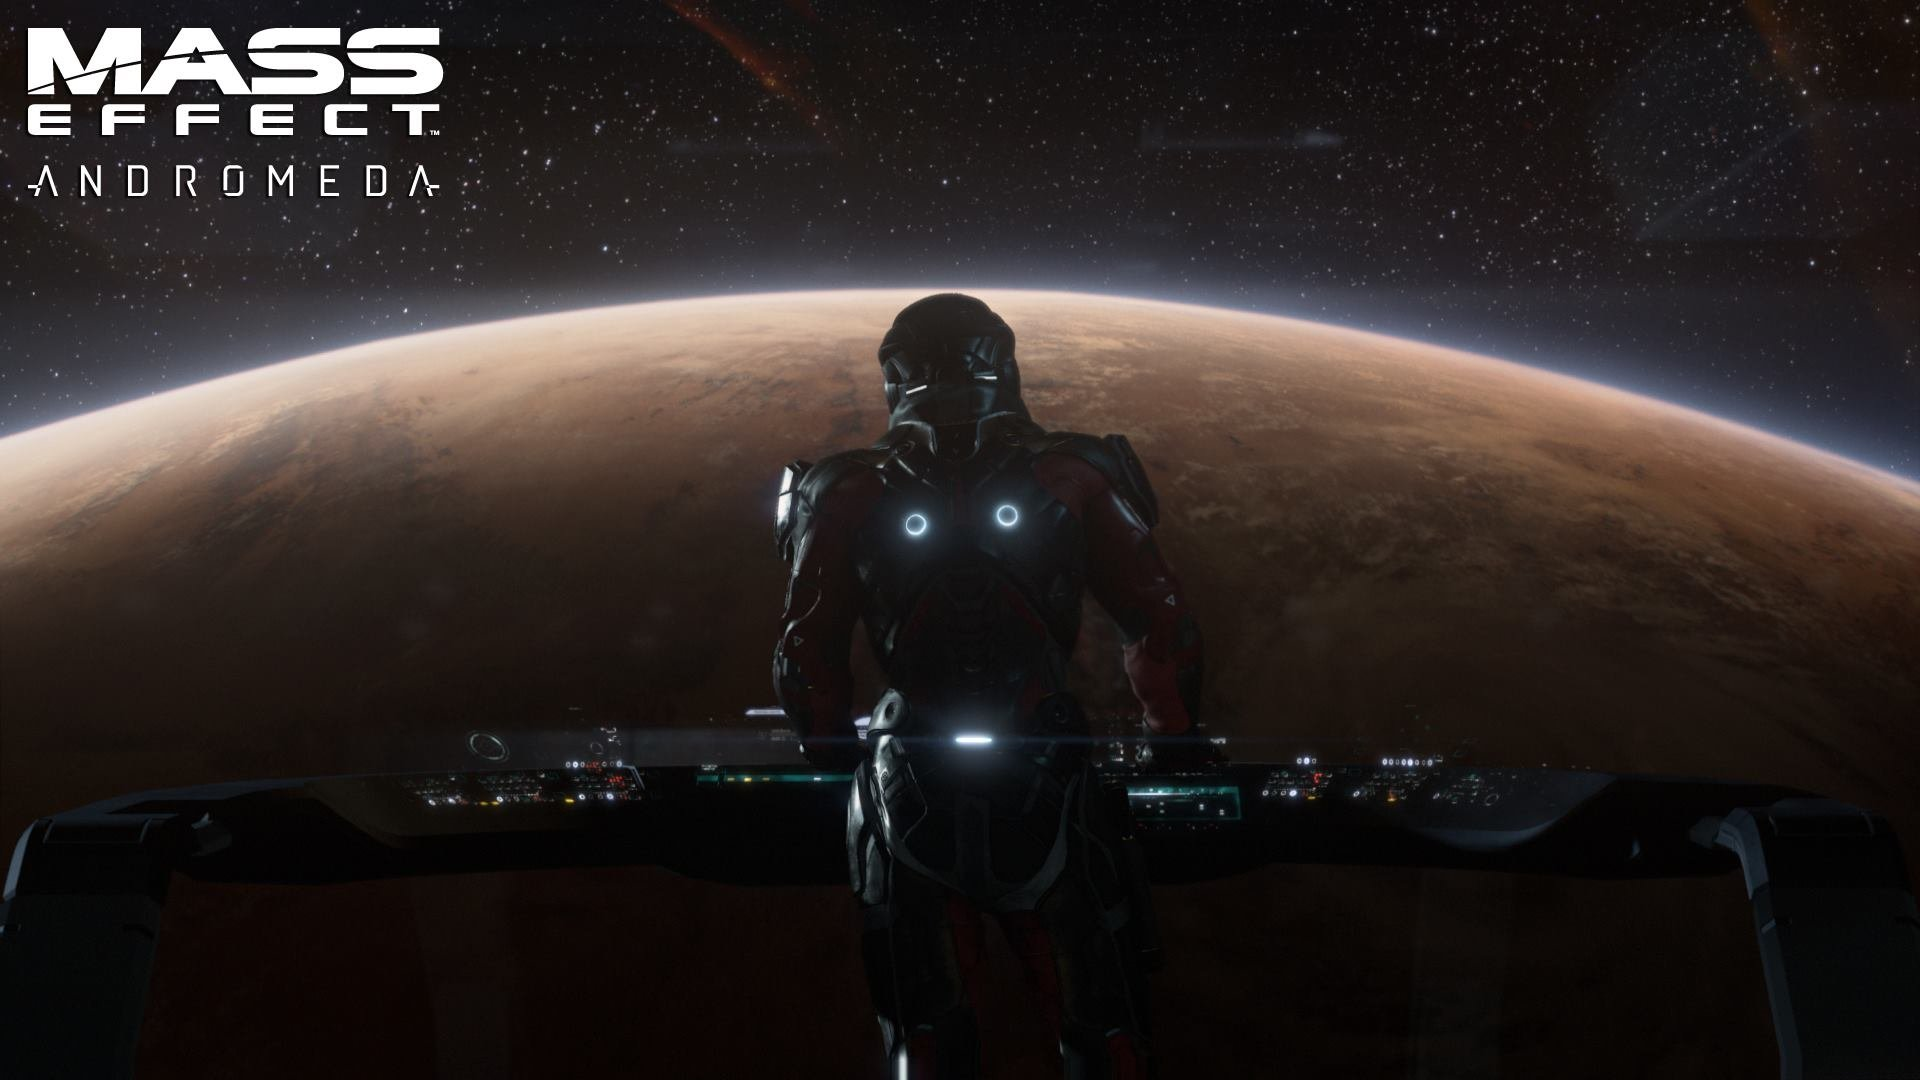 Mass Effect Andromeda XBOX ONE, HD Games, 4k Wallpapers ...